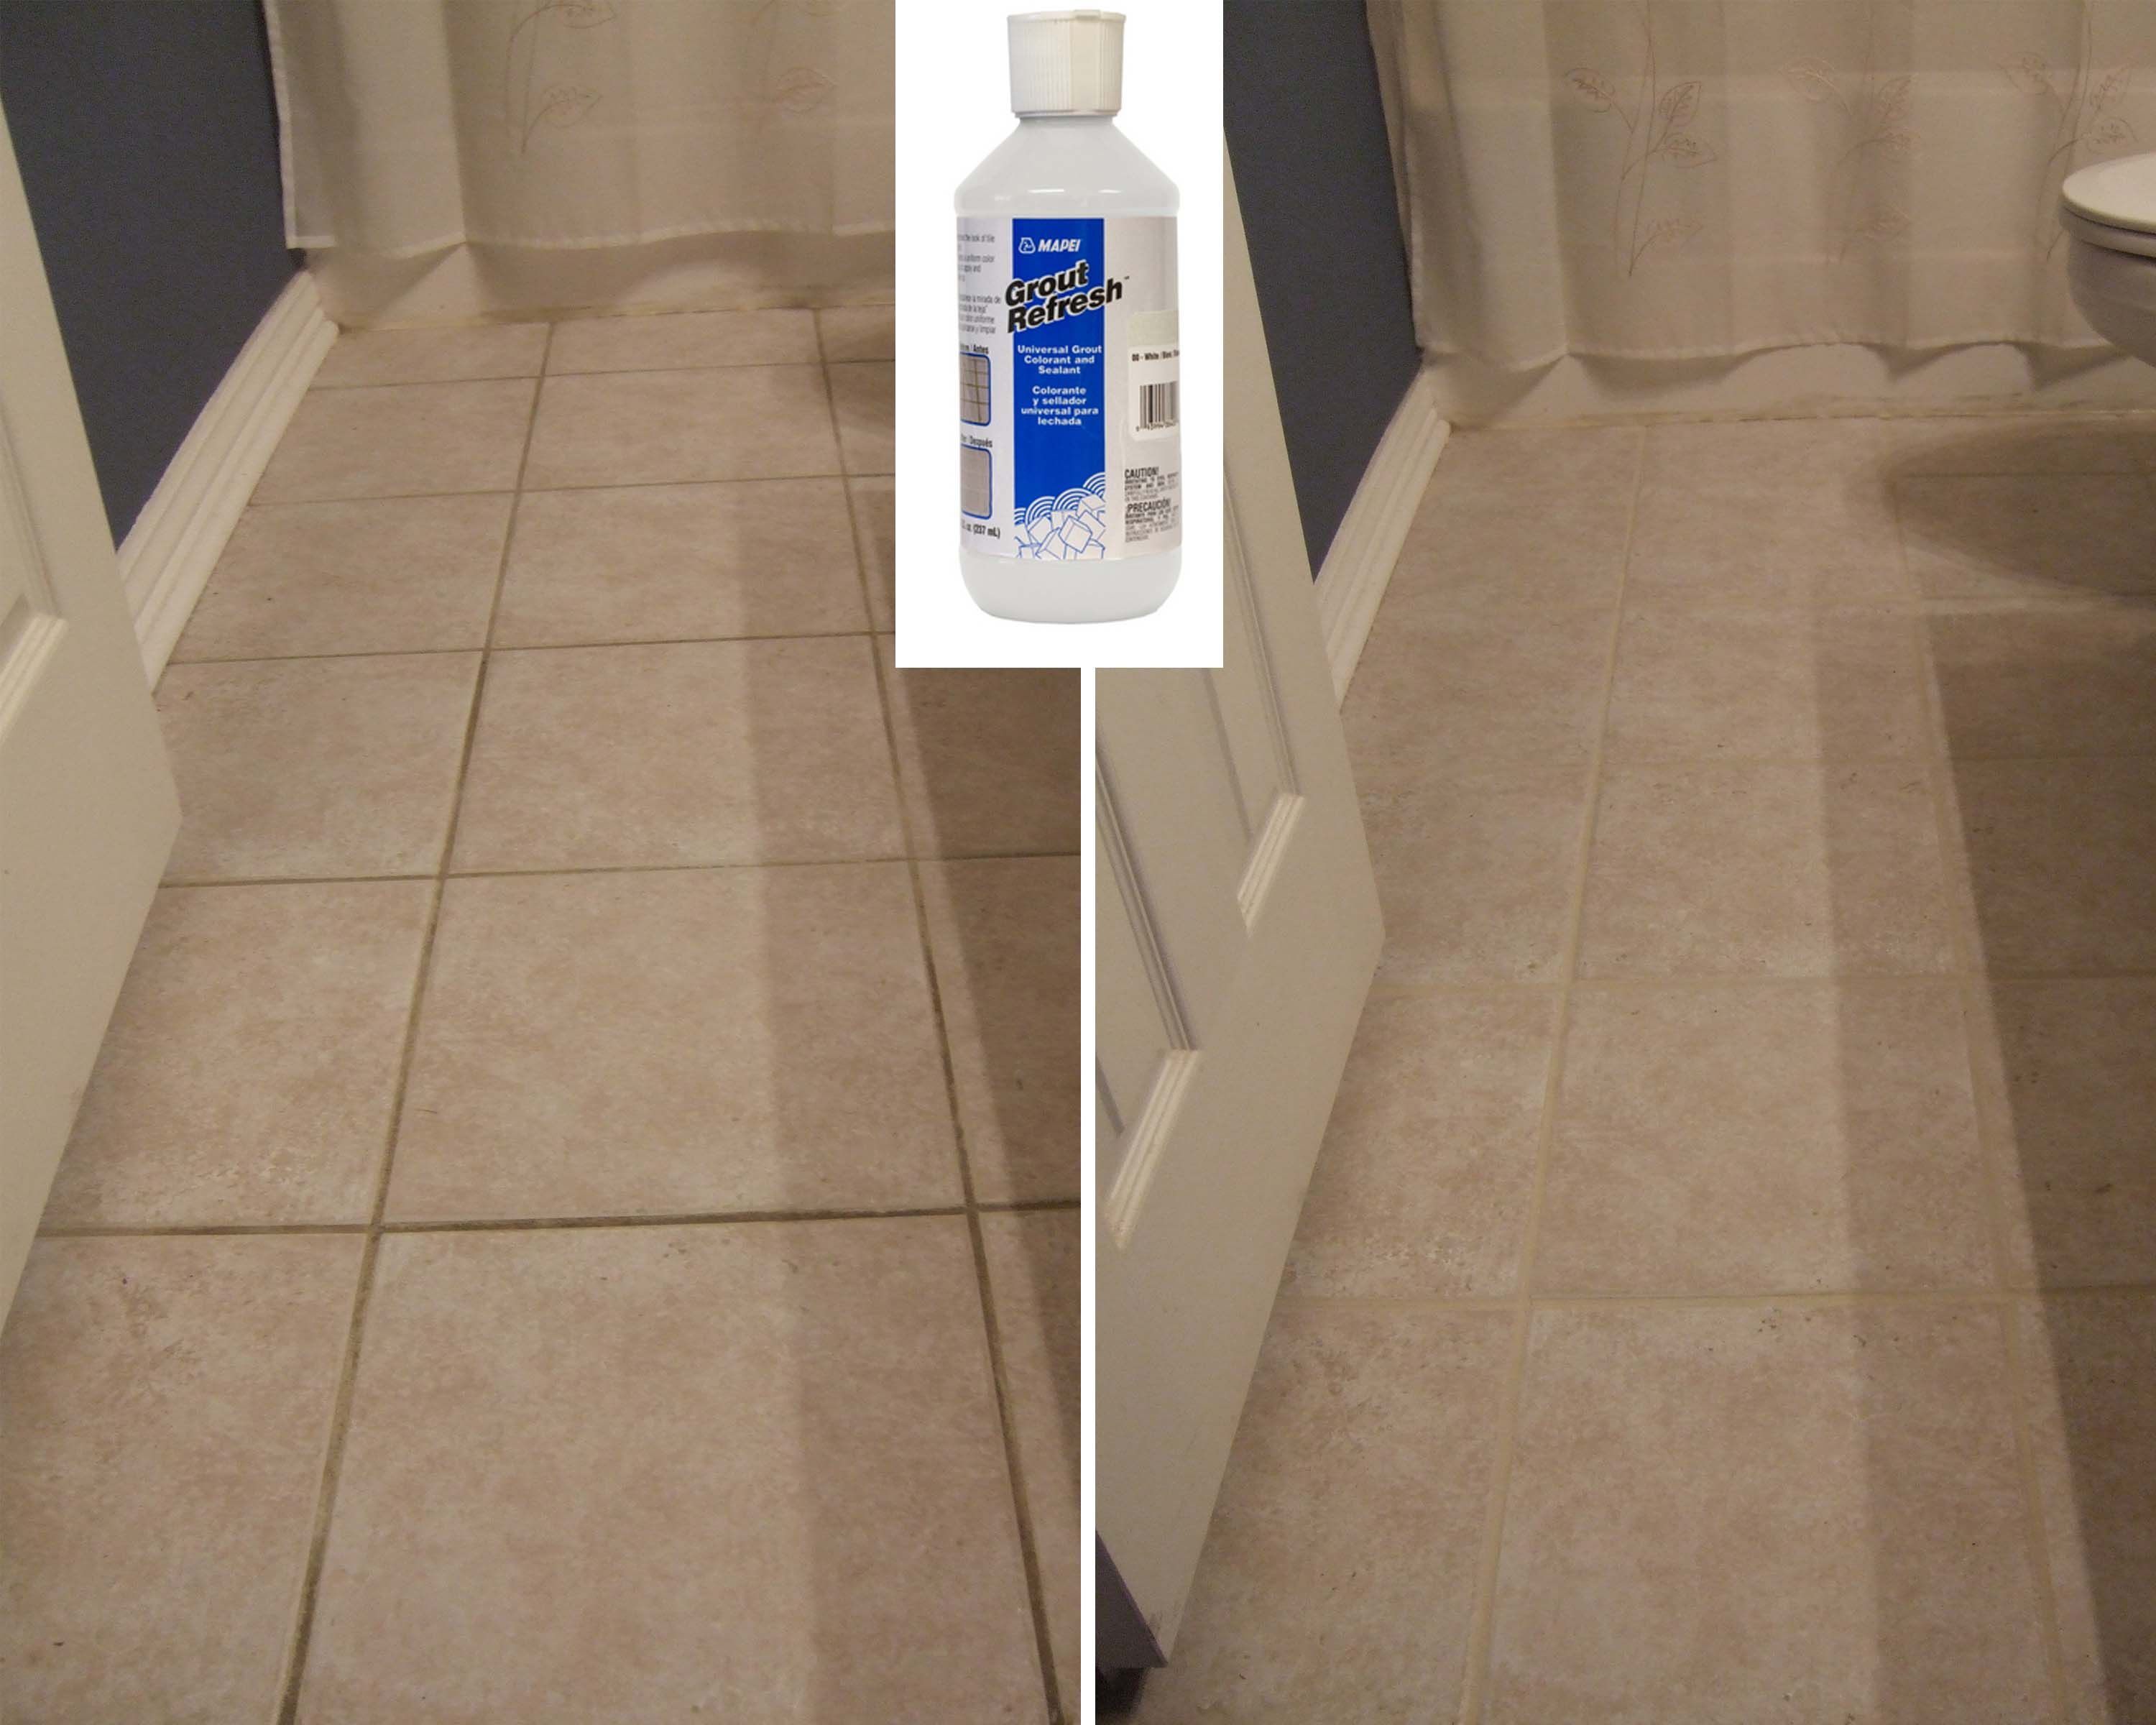 How to clean grout with peroxide baking soda grout clean grout to clean grout baking soda and hydrogen peroxide paste let sit about 30 mins dailygadgetfo Images